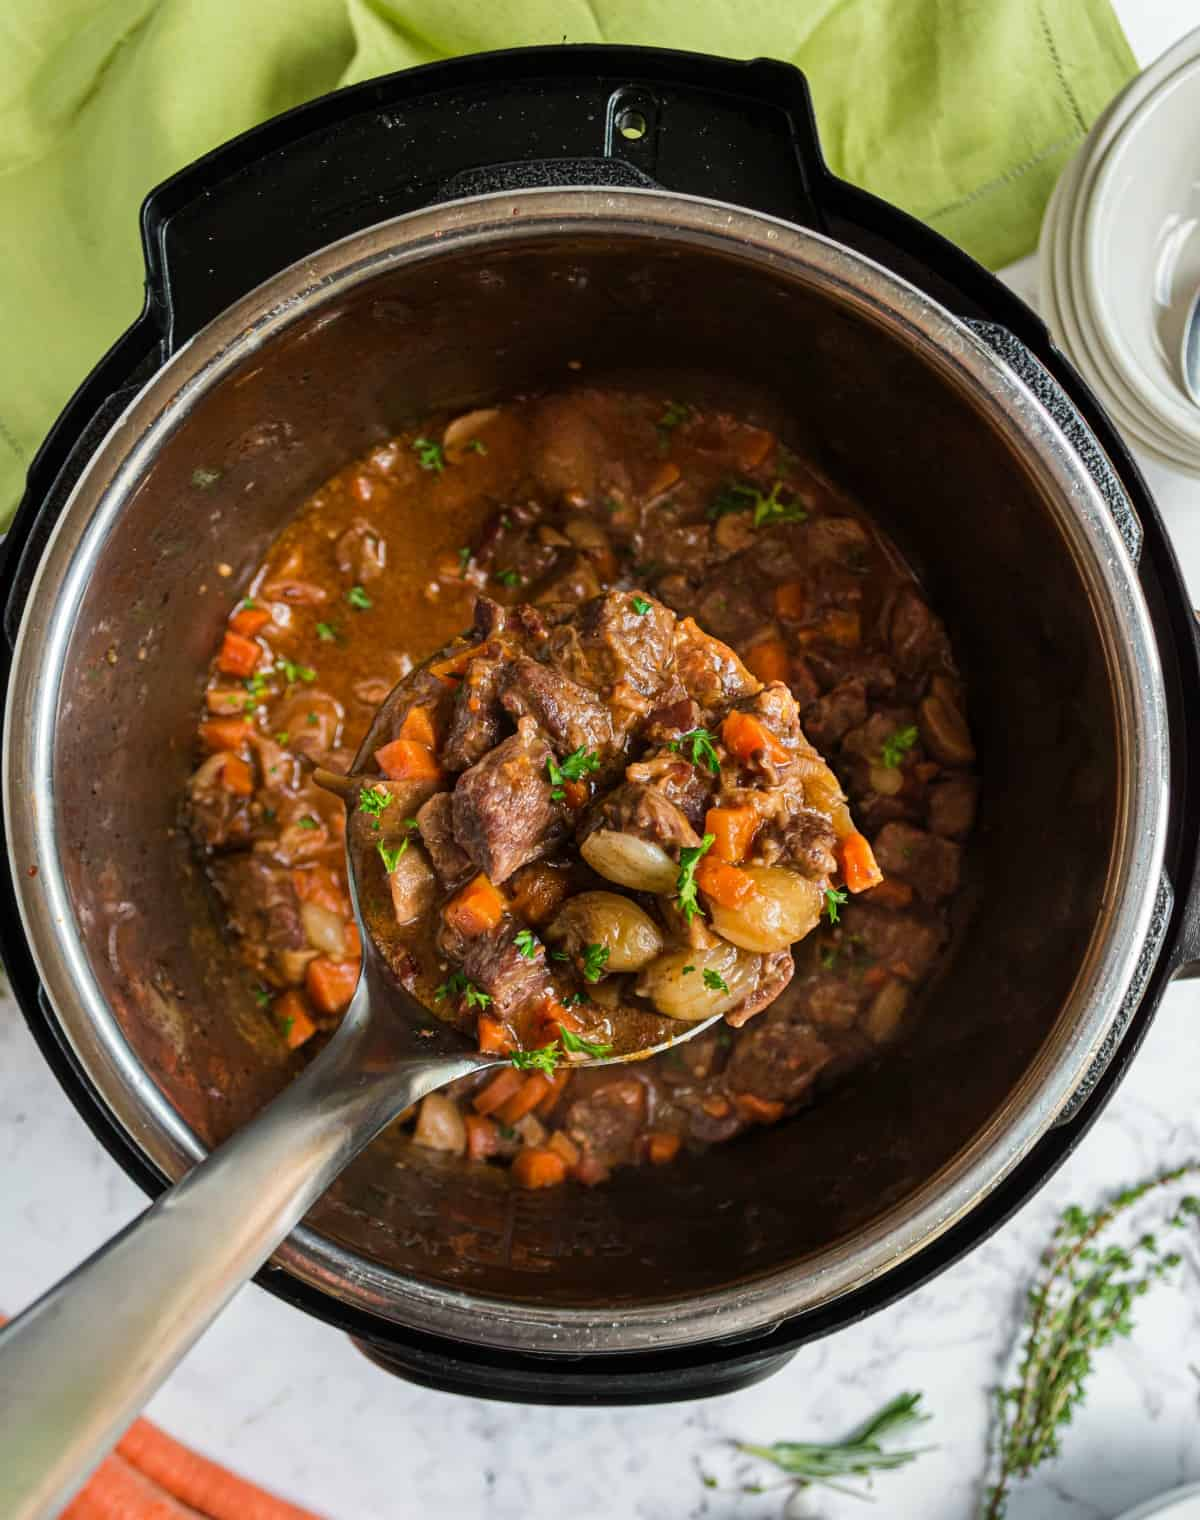 Beef bourguignon in the instant pot being lifted with a ladle.